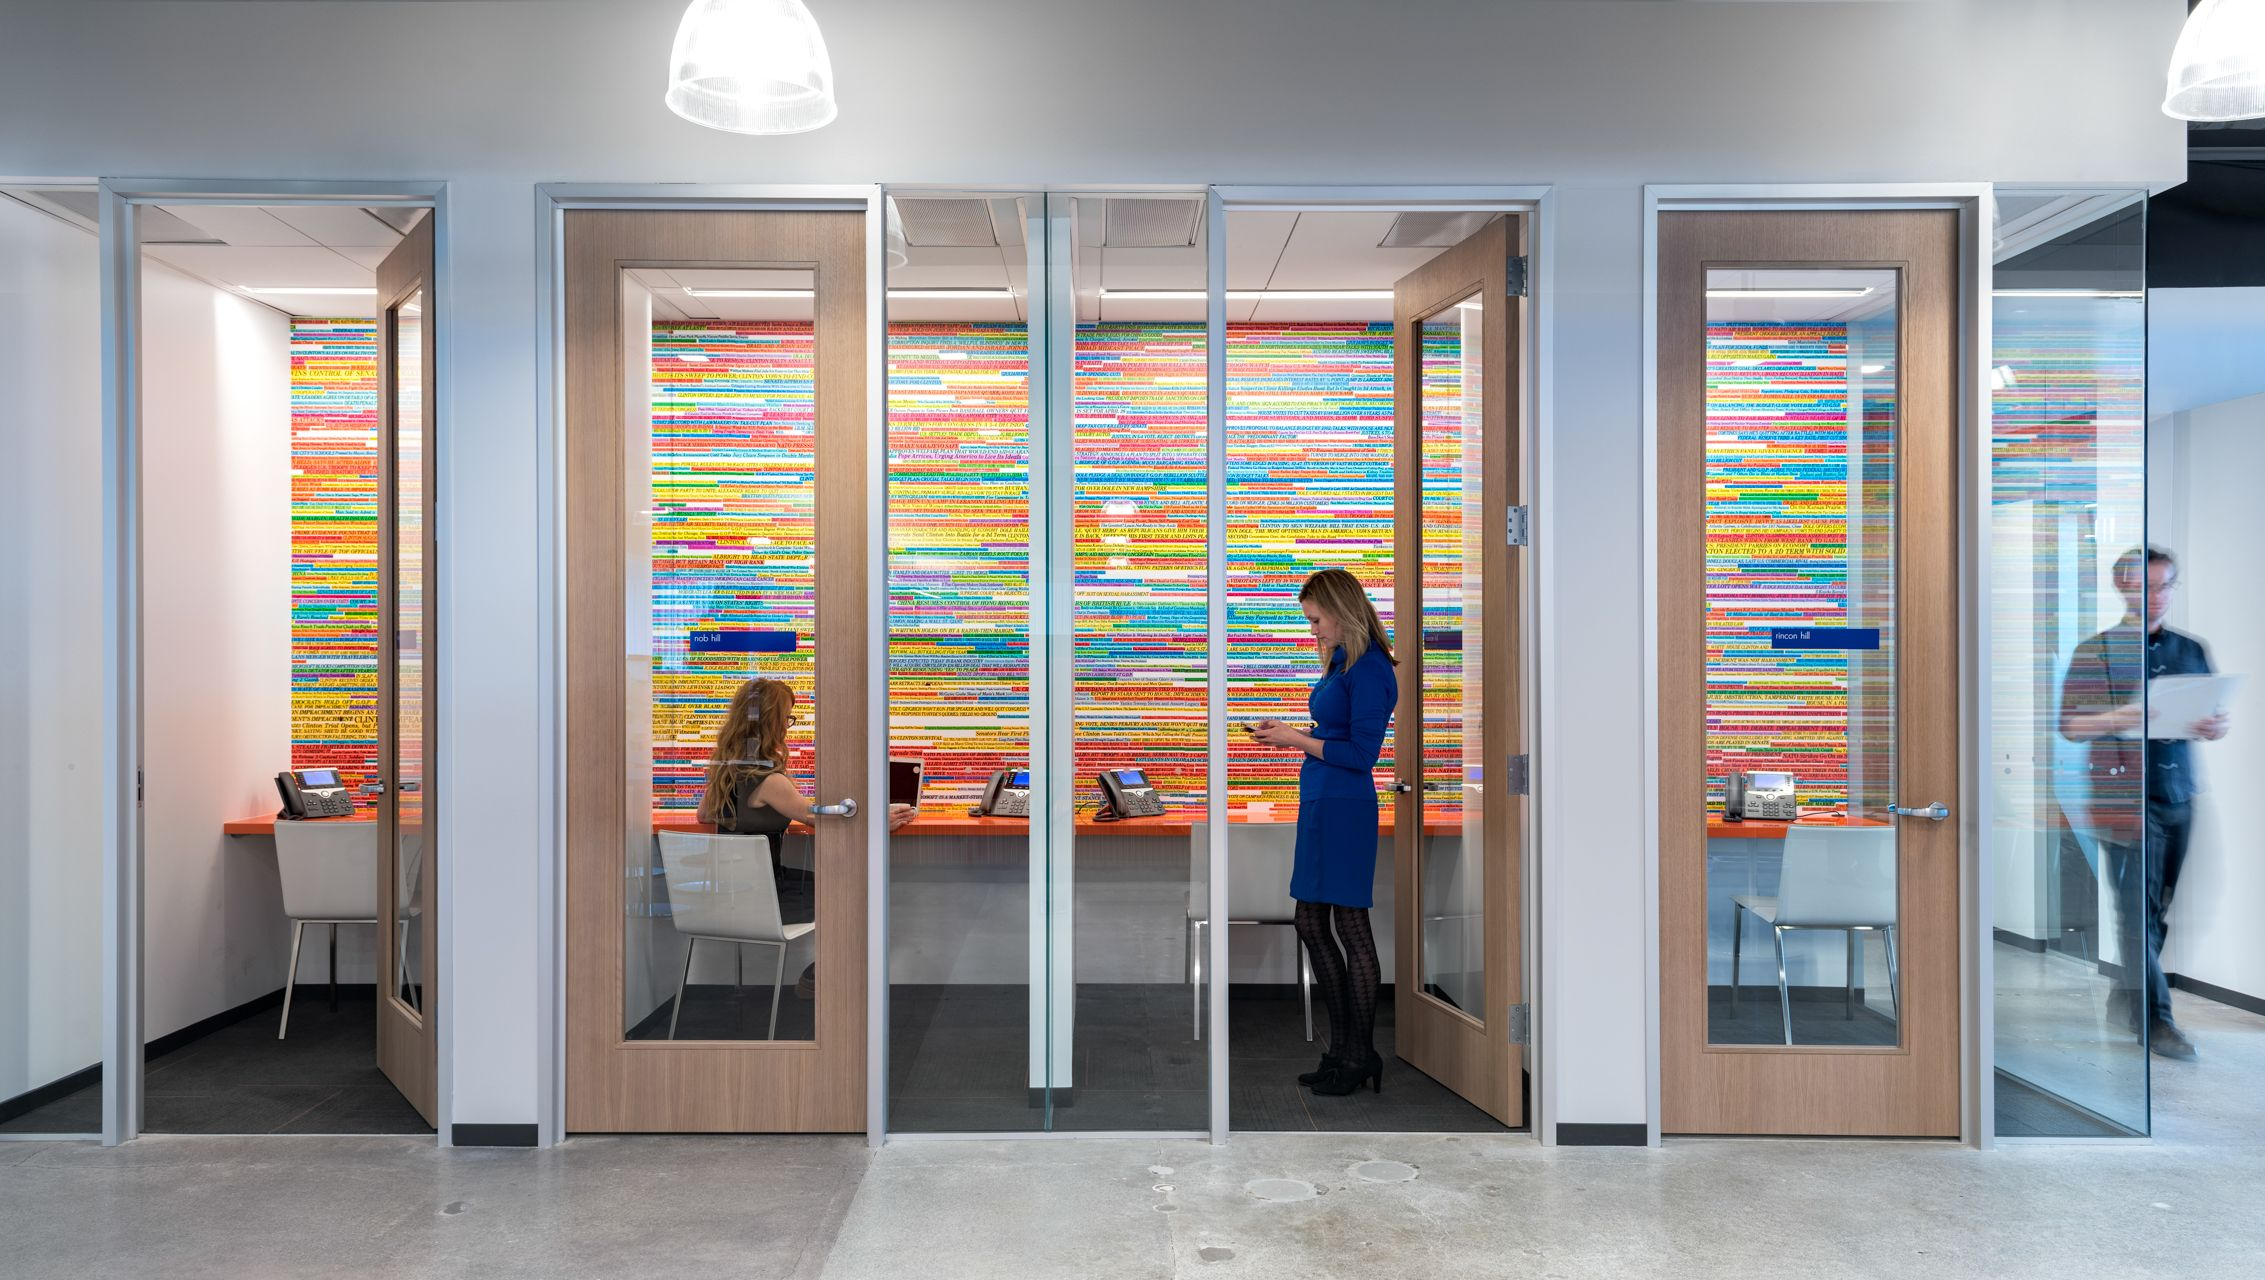 architects office interiors. Architectural Office Interiors. FENNIE+MEHL Architects | Interiors The Brunswick Group San Francisco